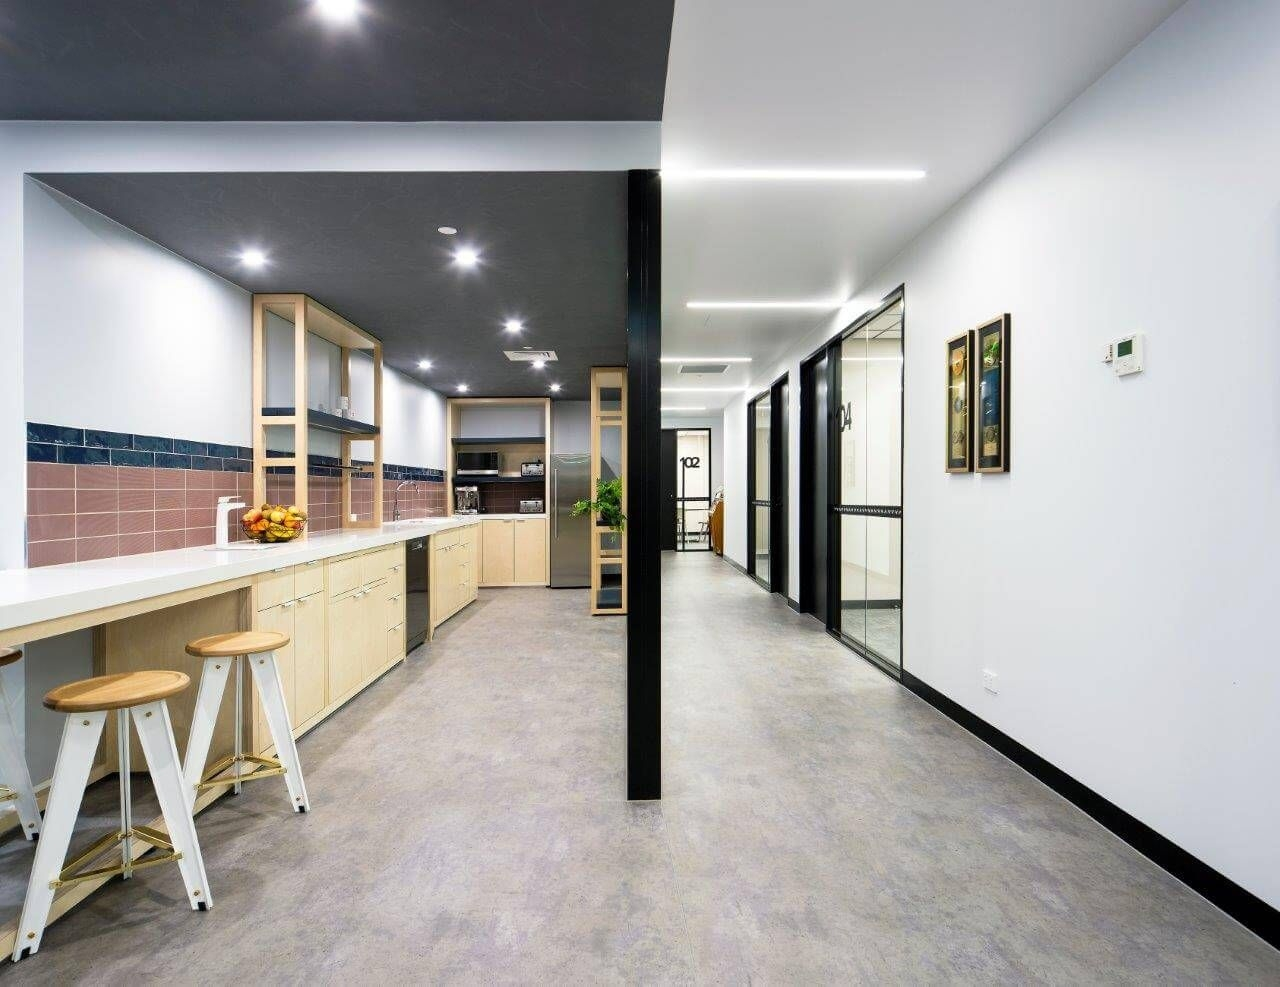 The Importance Of Office Kitchen Breakout Zones  Merit Interiors